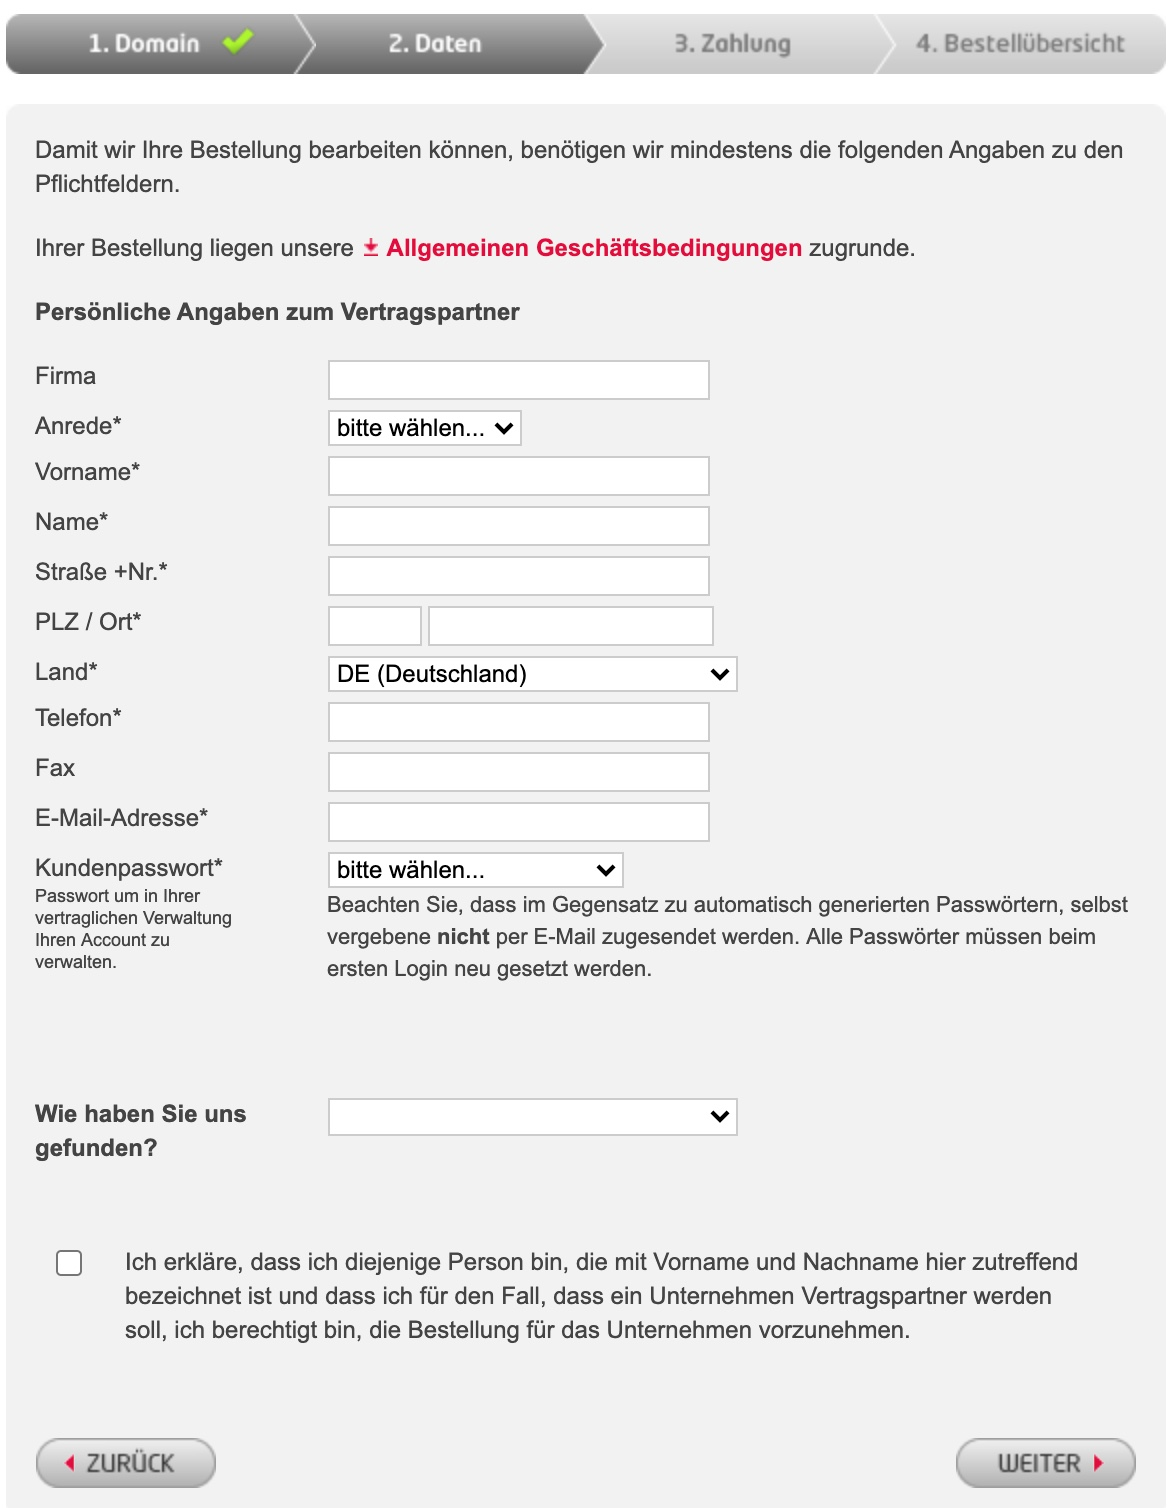 All-inkl Userdaten